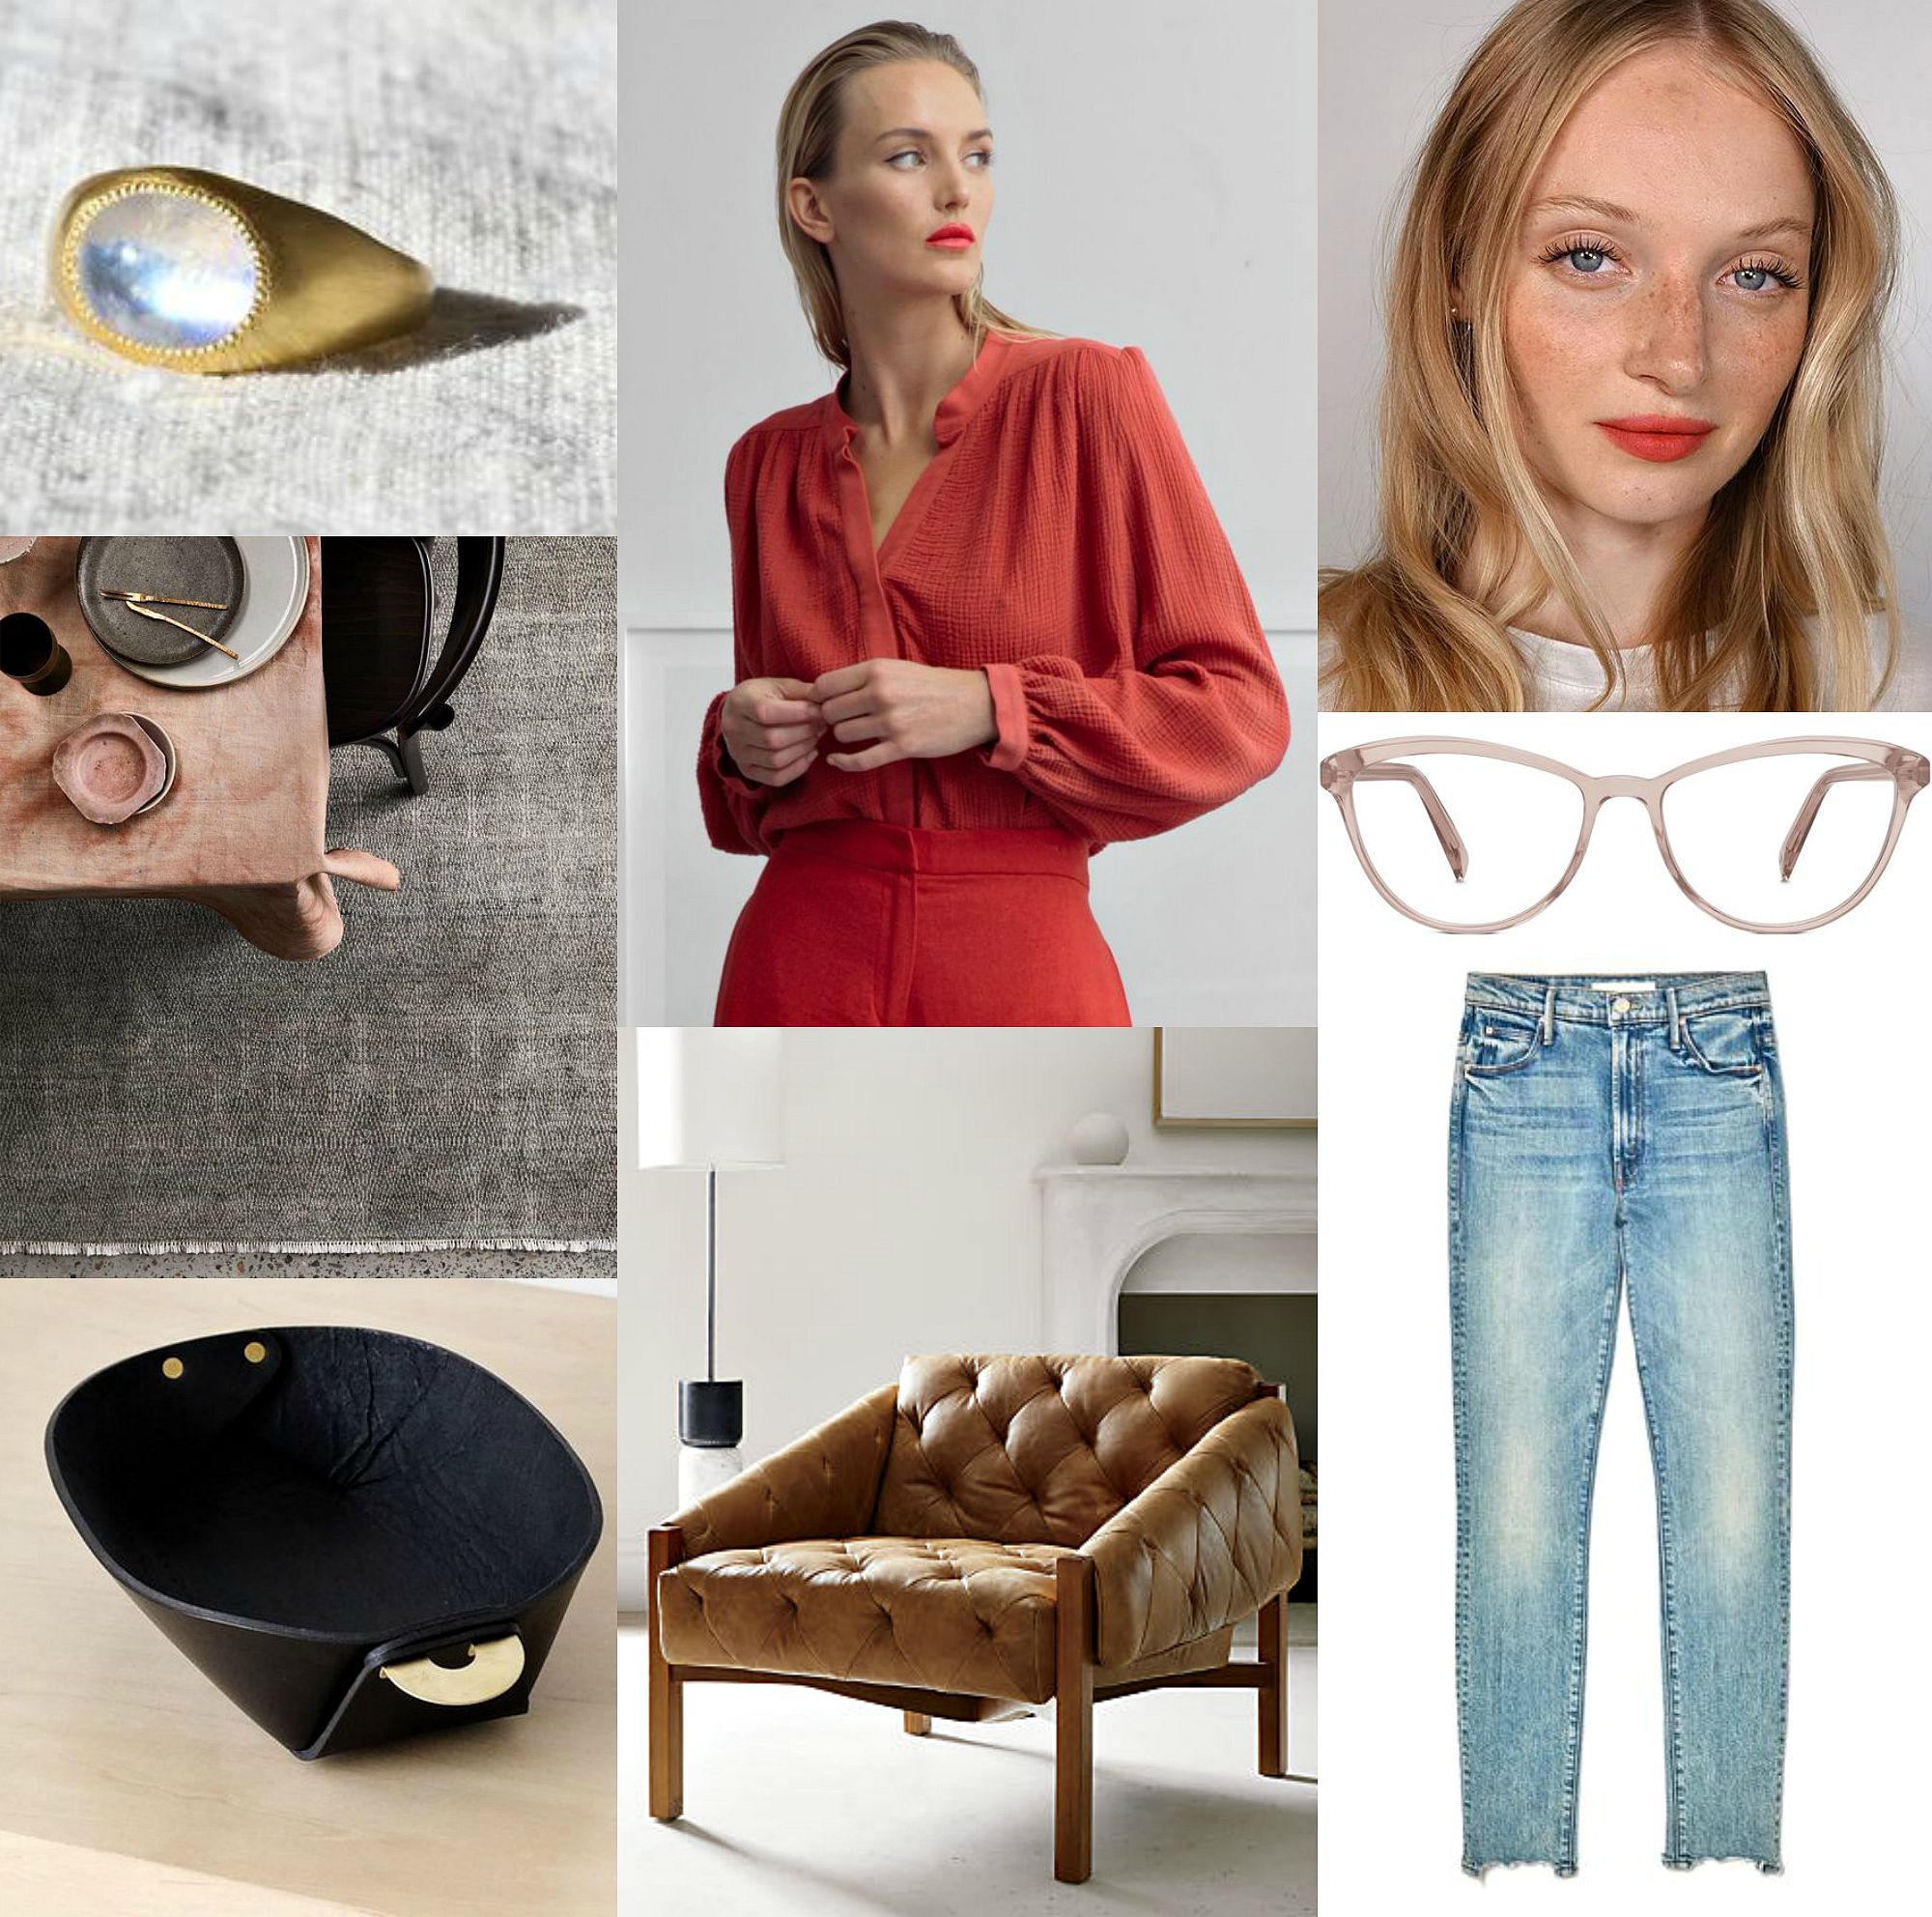 moonstone ring ,  red marish top ,  zip…my favorite red lipstick ,  paragon rug ,  louise glasses ,  leather and brass catch-all,    leather tufted chair ,  stunner ankle chew jeans